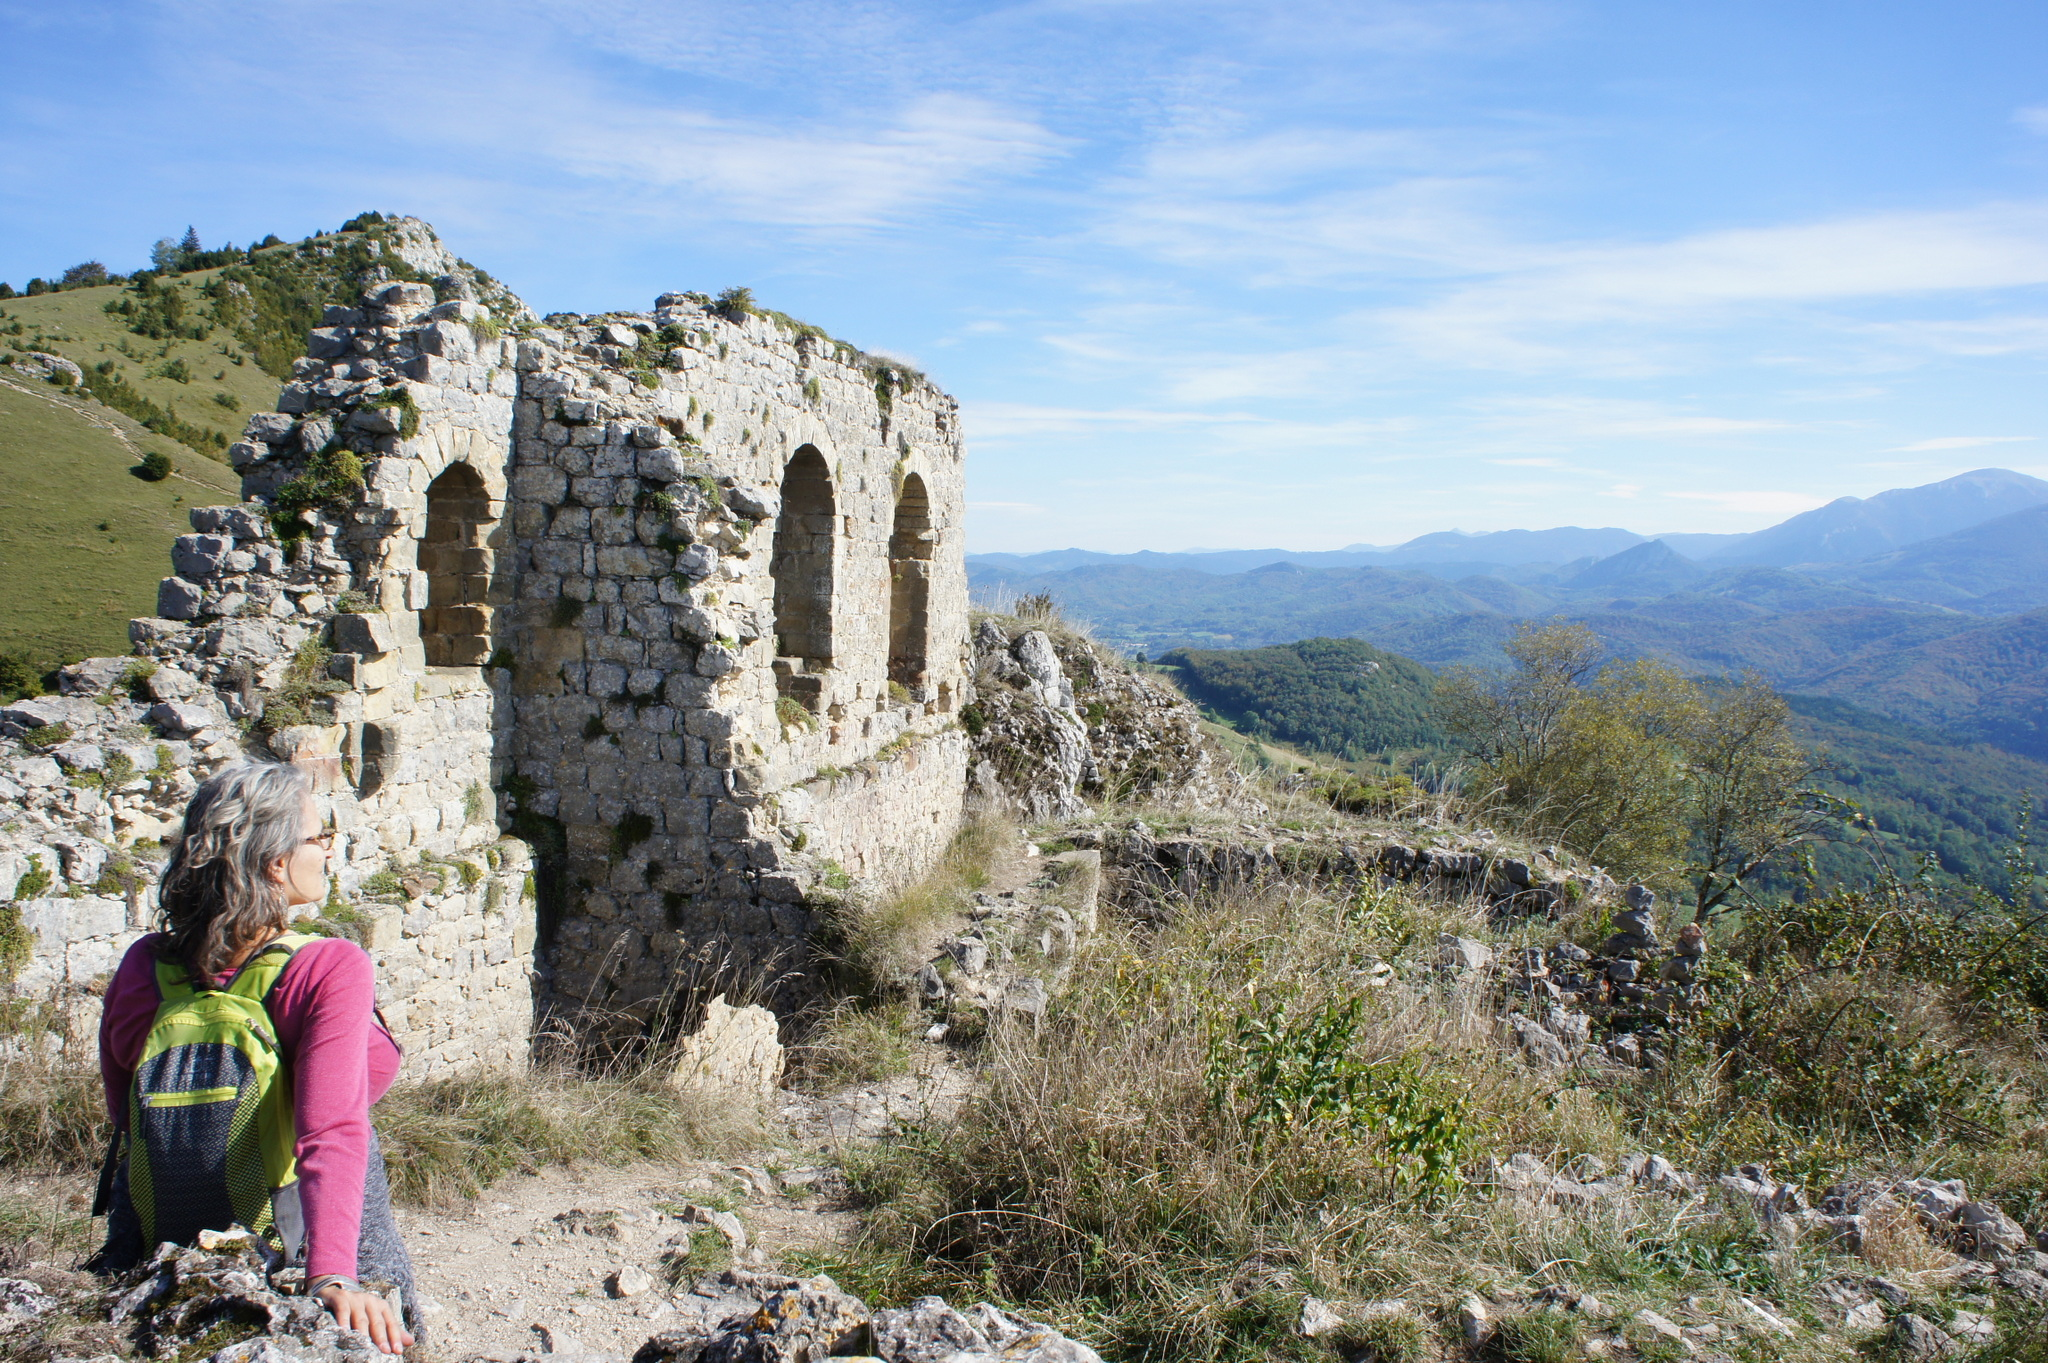 We will explore the glorious region, one of France's best kept secrets.